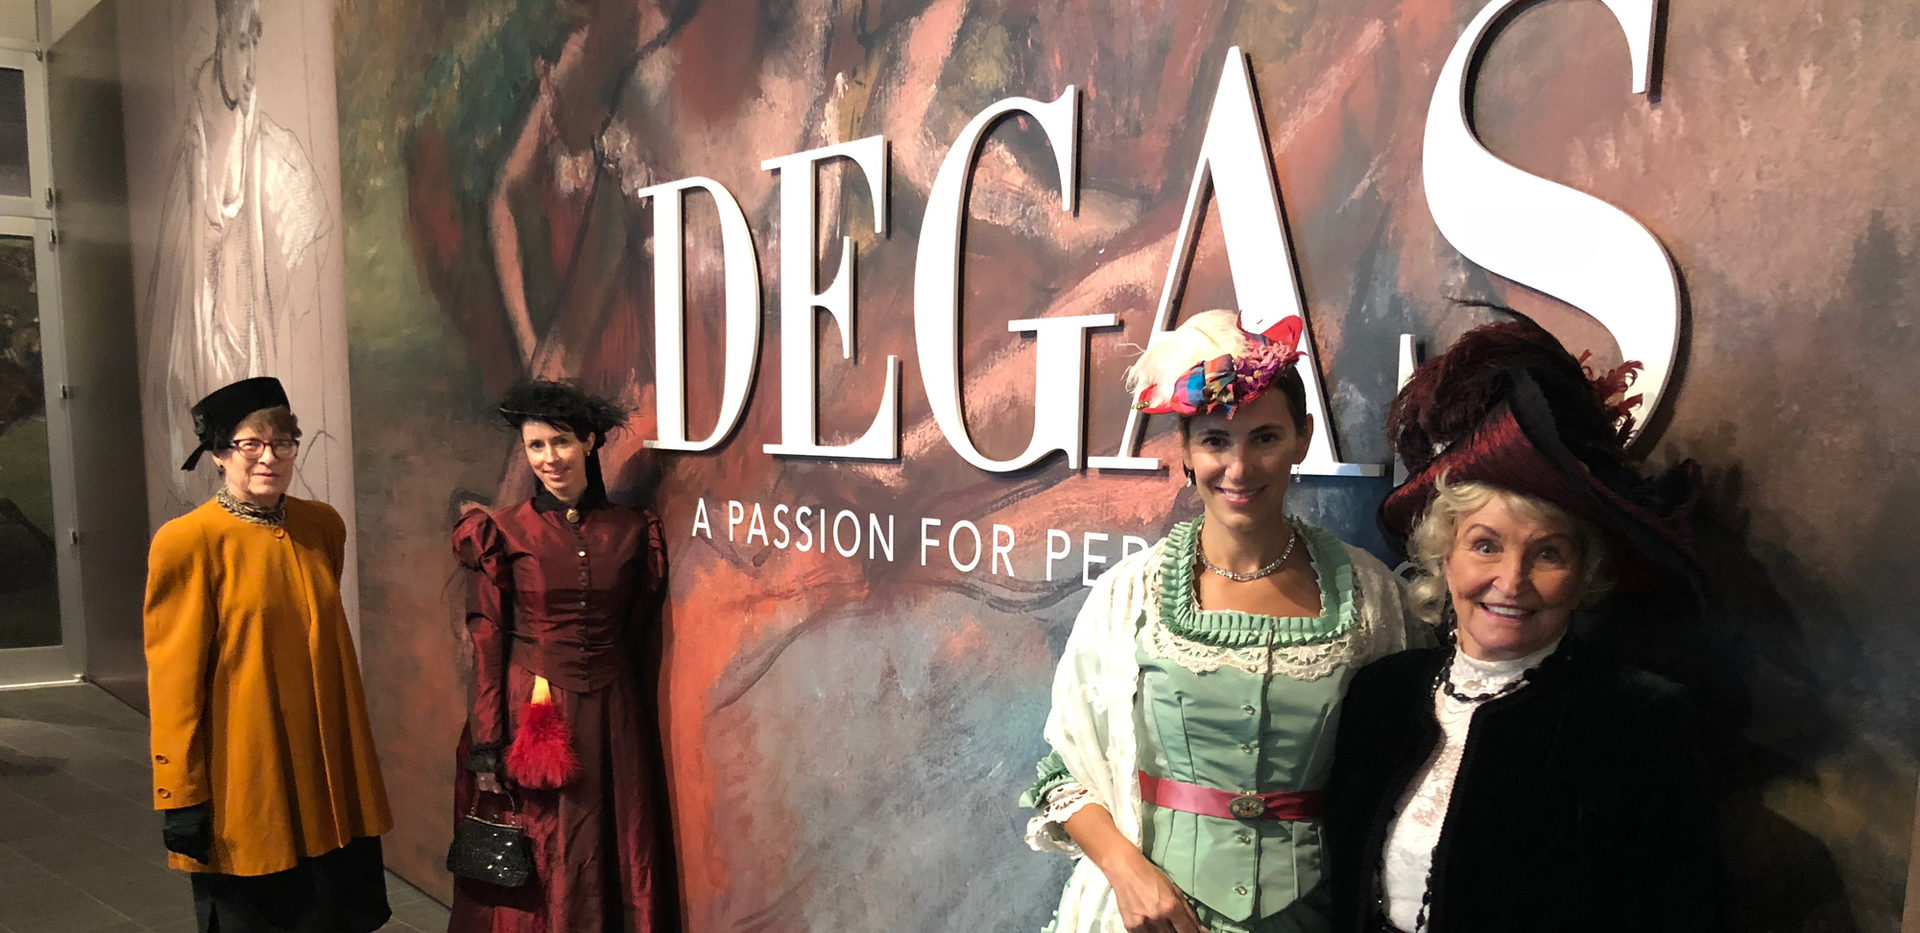 Degas Exhibit at the Denver Art Museum - Barbara Trick from Central City, Erin Niswender from Ft. Collins, Nico Nagel & Dottie Bakke